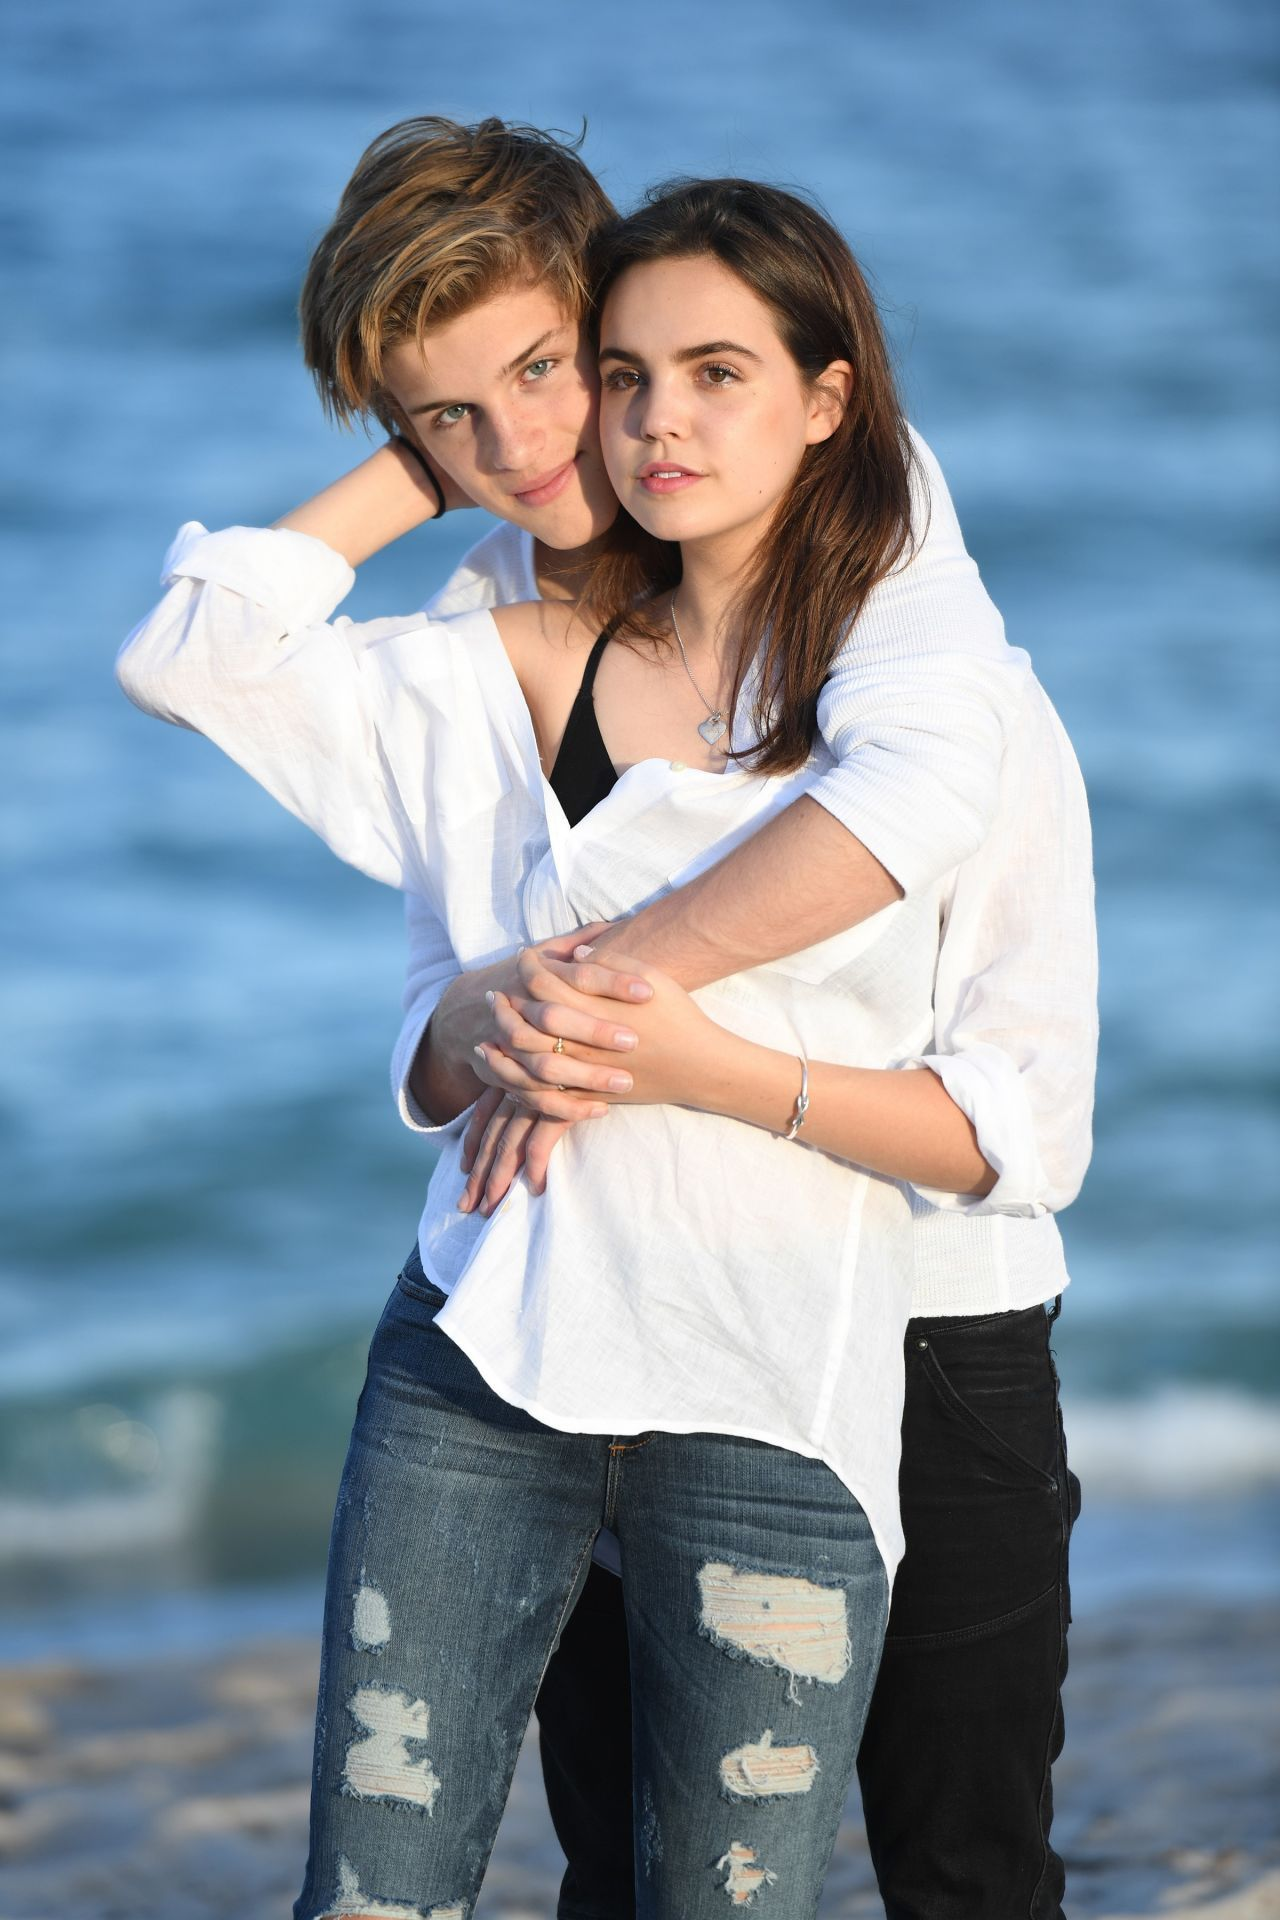 Bailee Madison Photoshoot With Her Boyfriend Alex Lange Fort